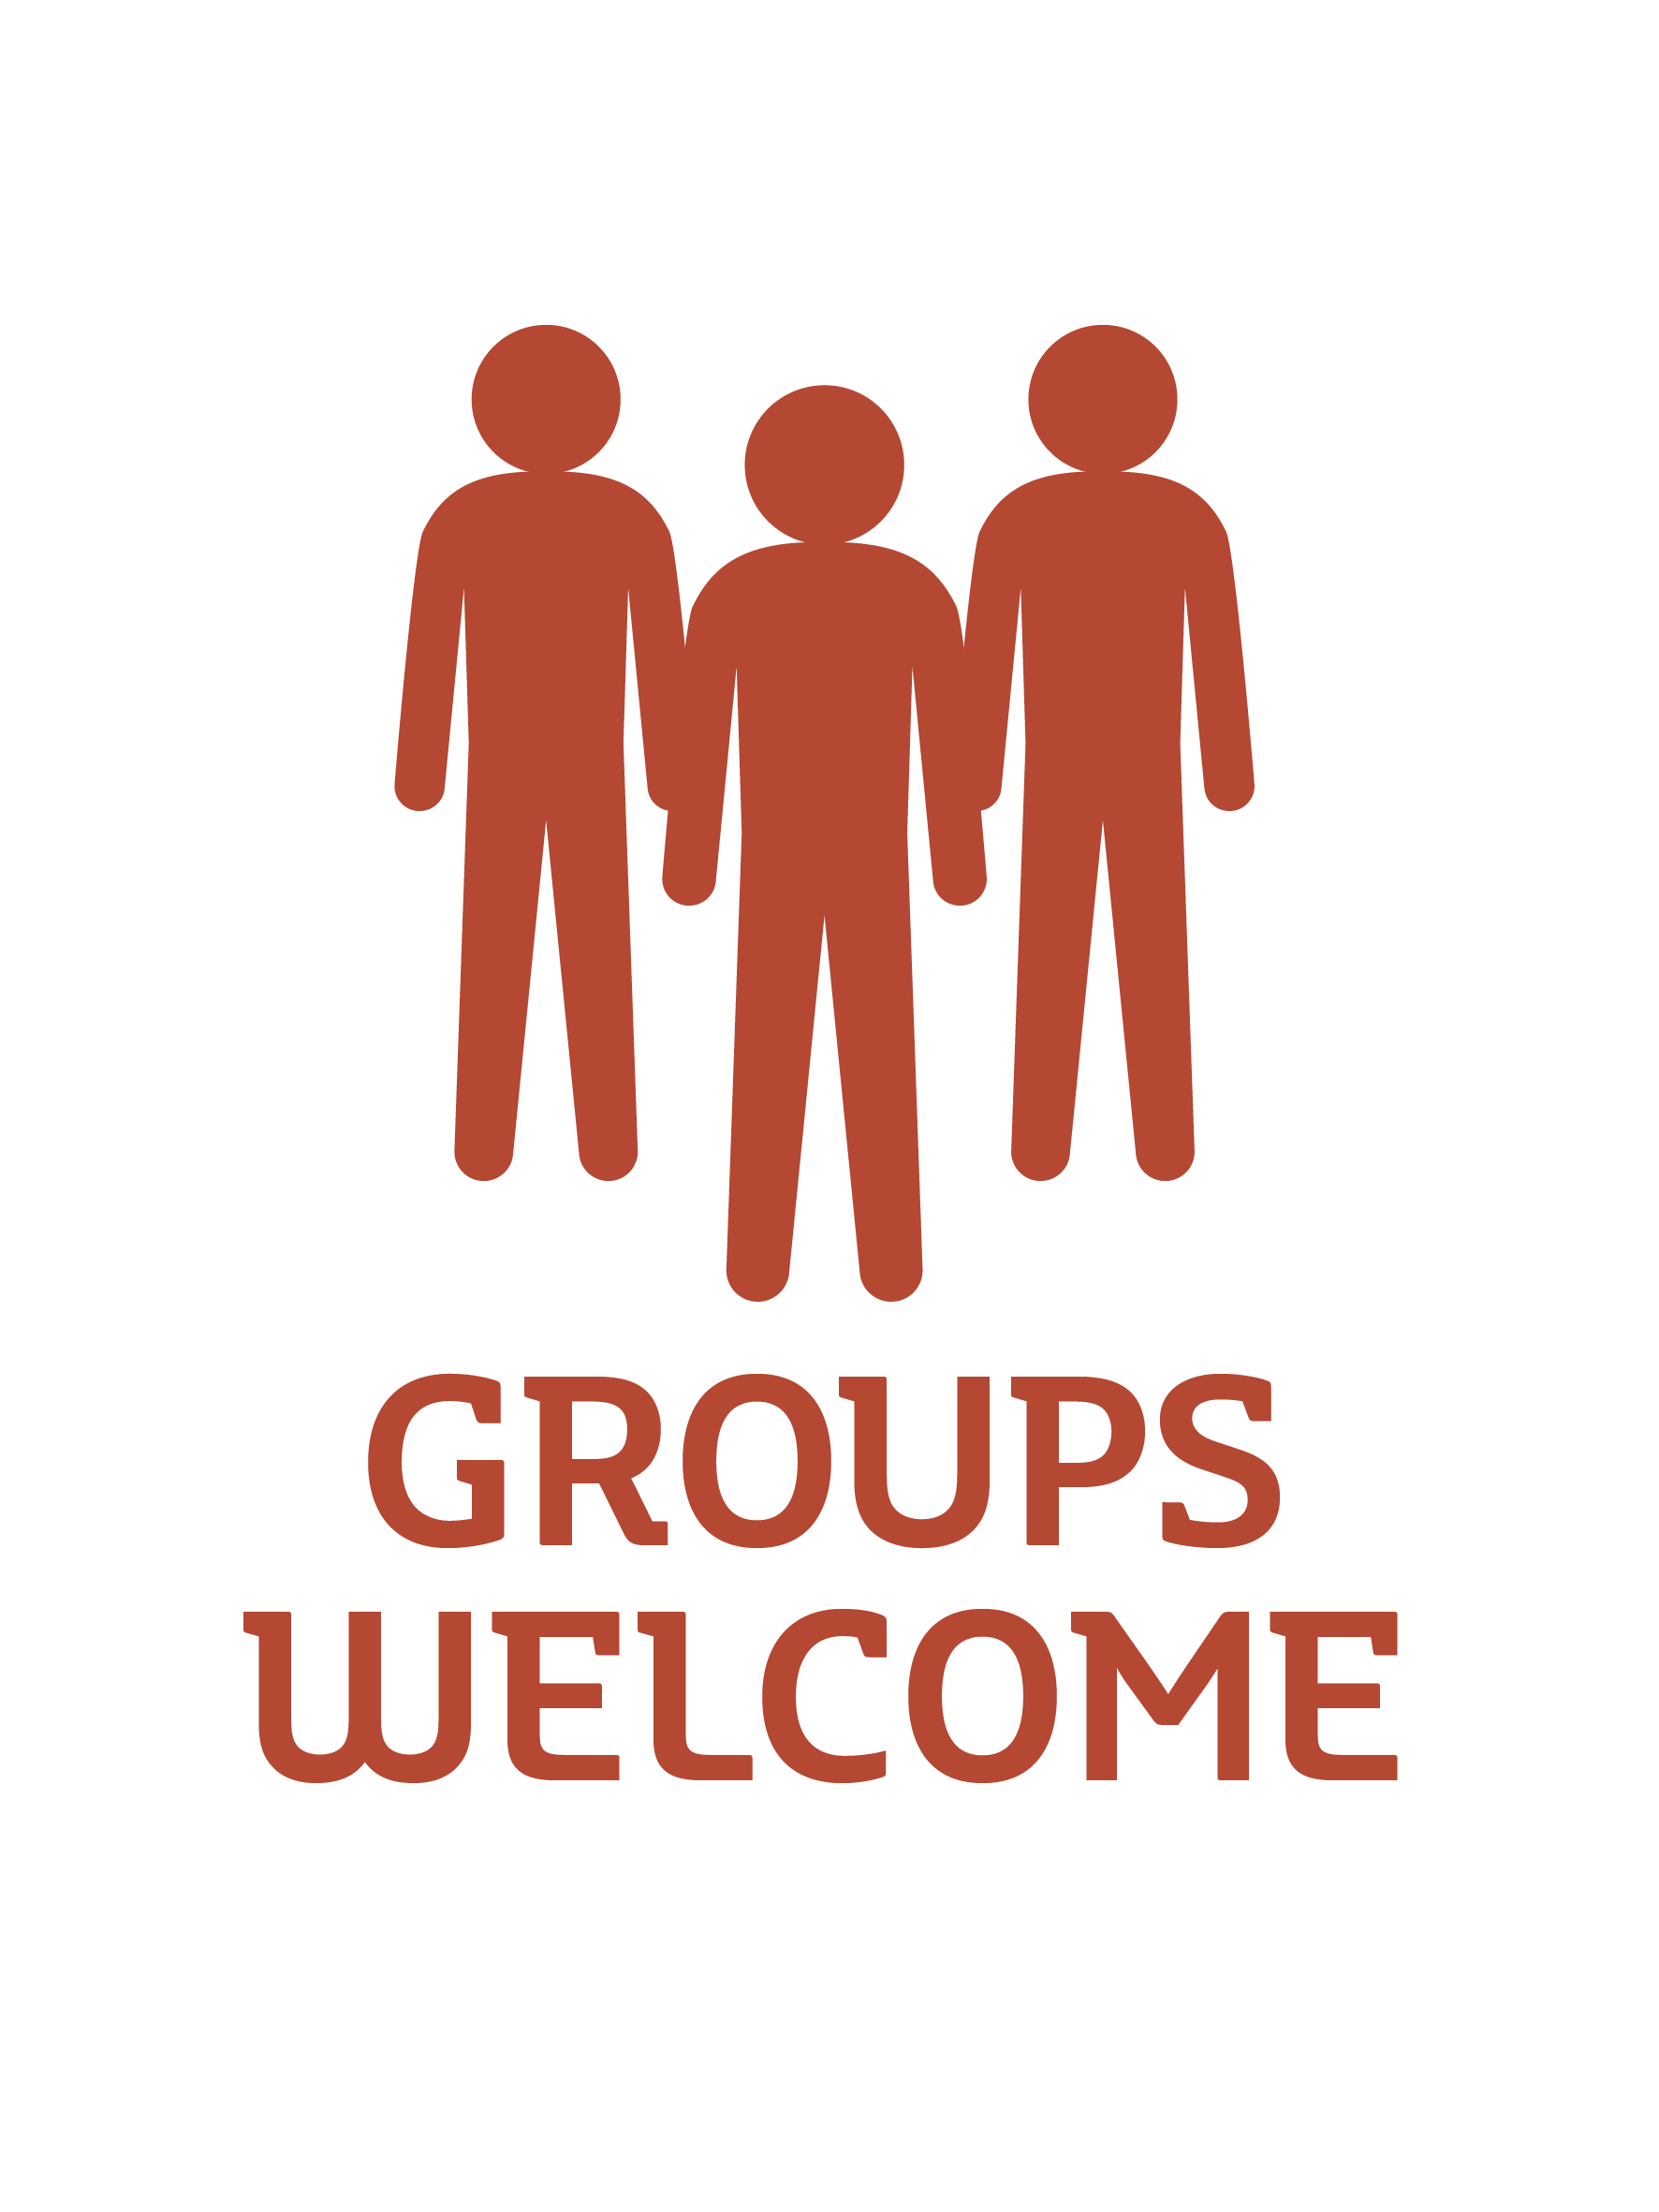 Groups welcome.jpg